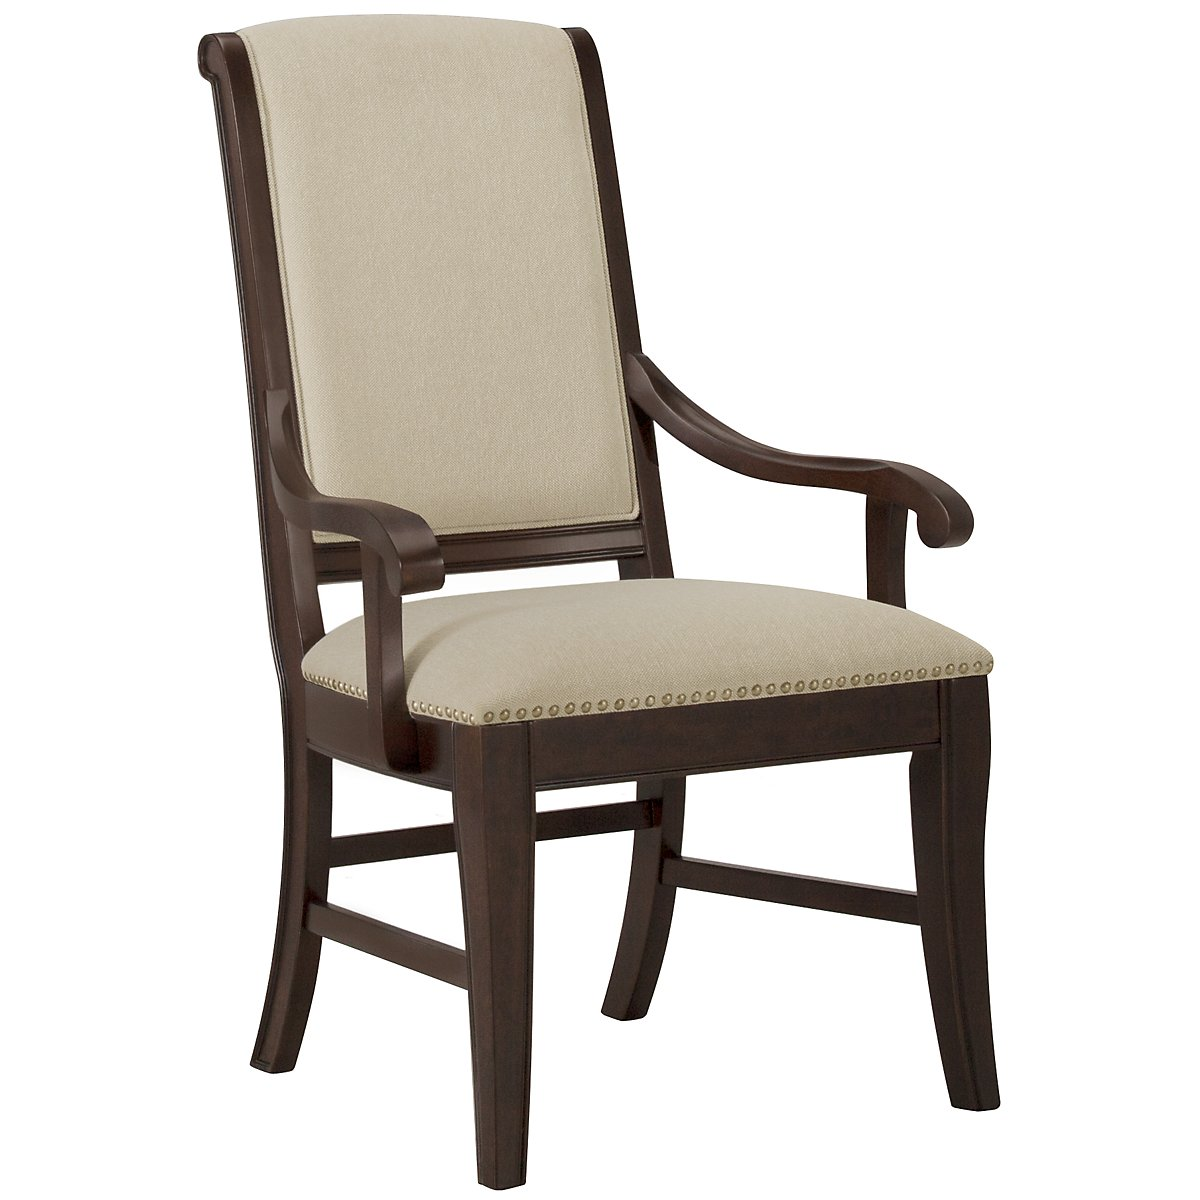 Canyon Dark Tone Upholstered Arm Chair